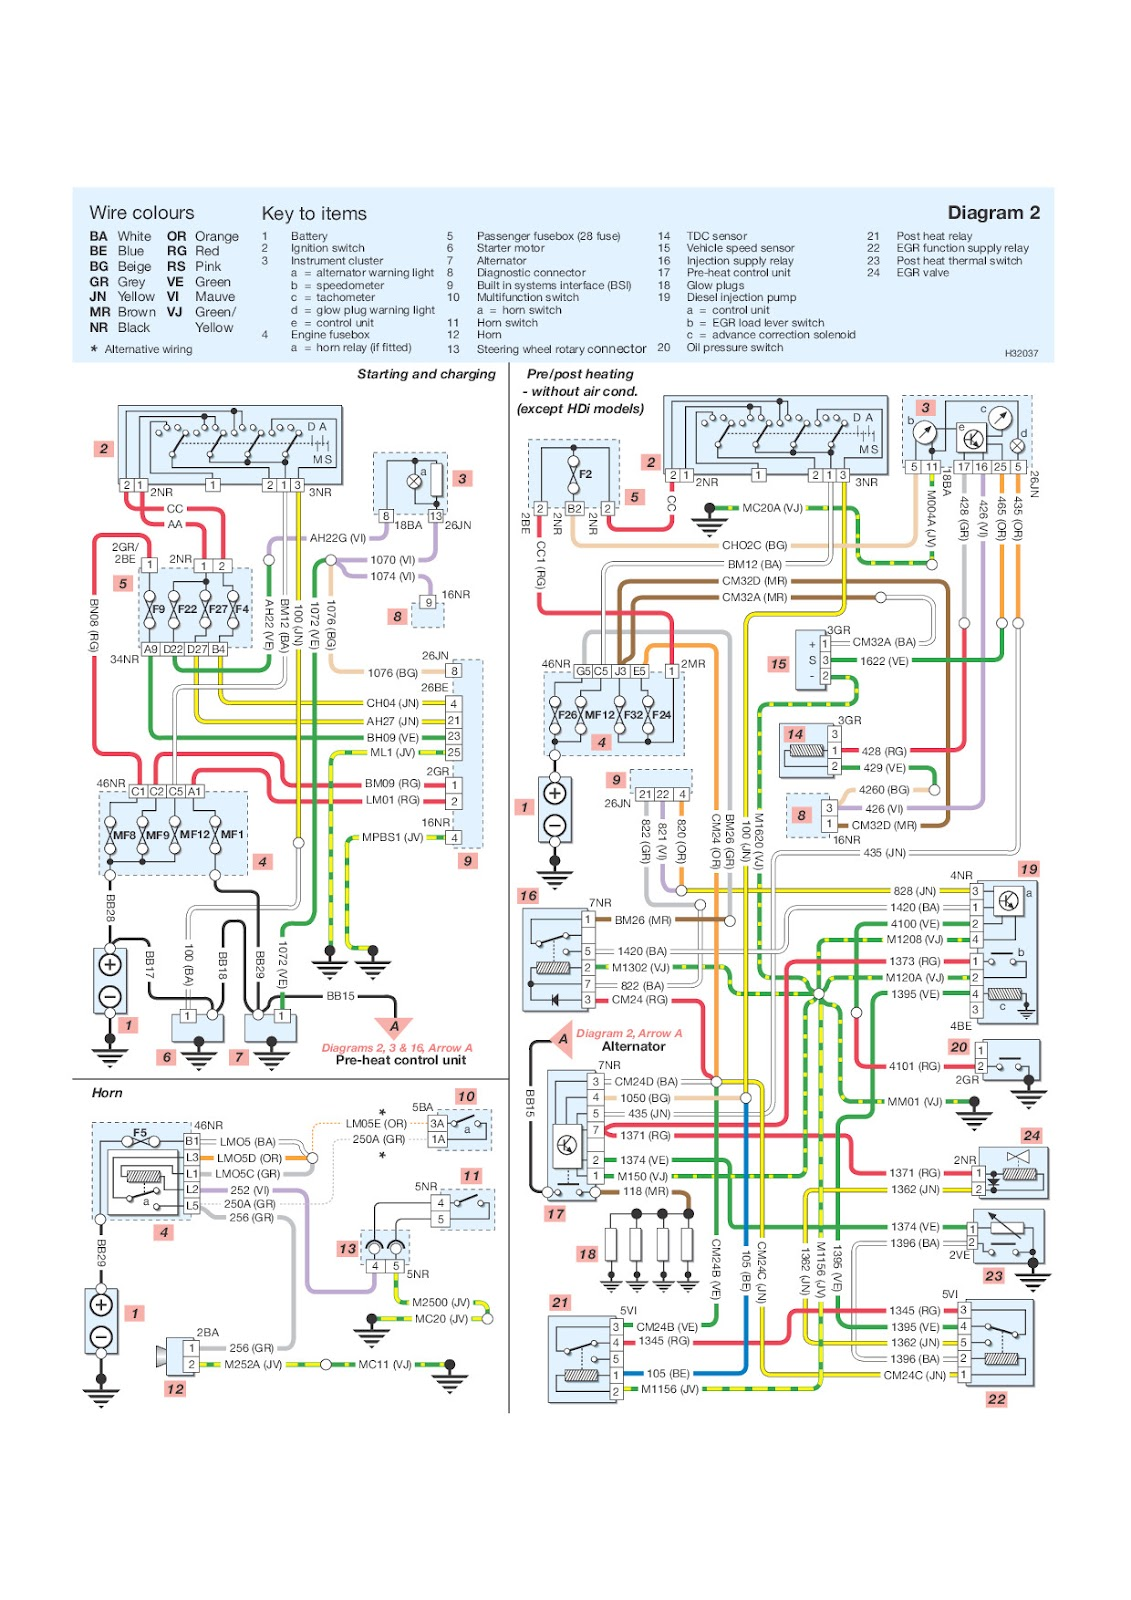 Peugeot 206 bsi wiring diagram wiring diagram your wiring diagrams source peugeot 206 starting charging horn peugeot rcz peugeot 206 bsi wiring diagram asfbconference2016 Choice Image